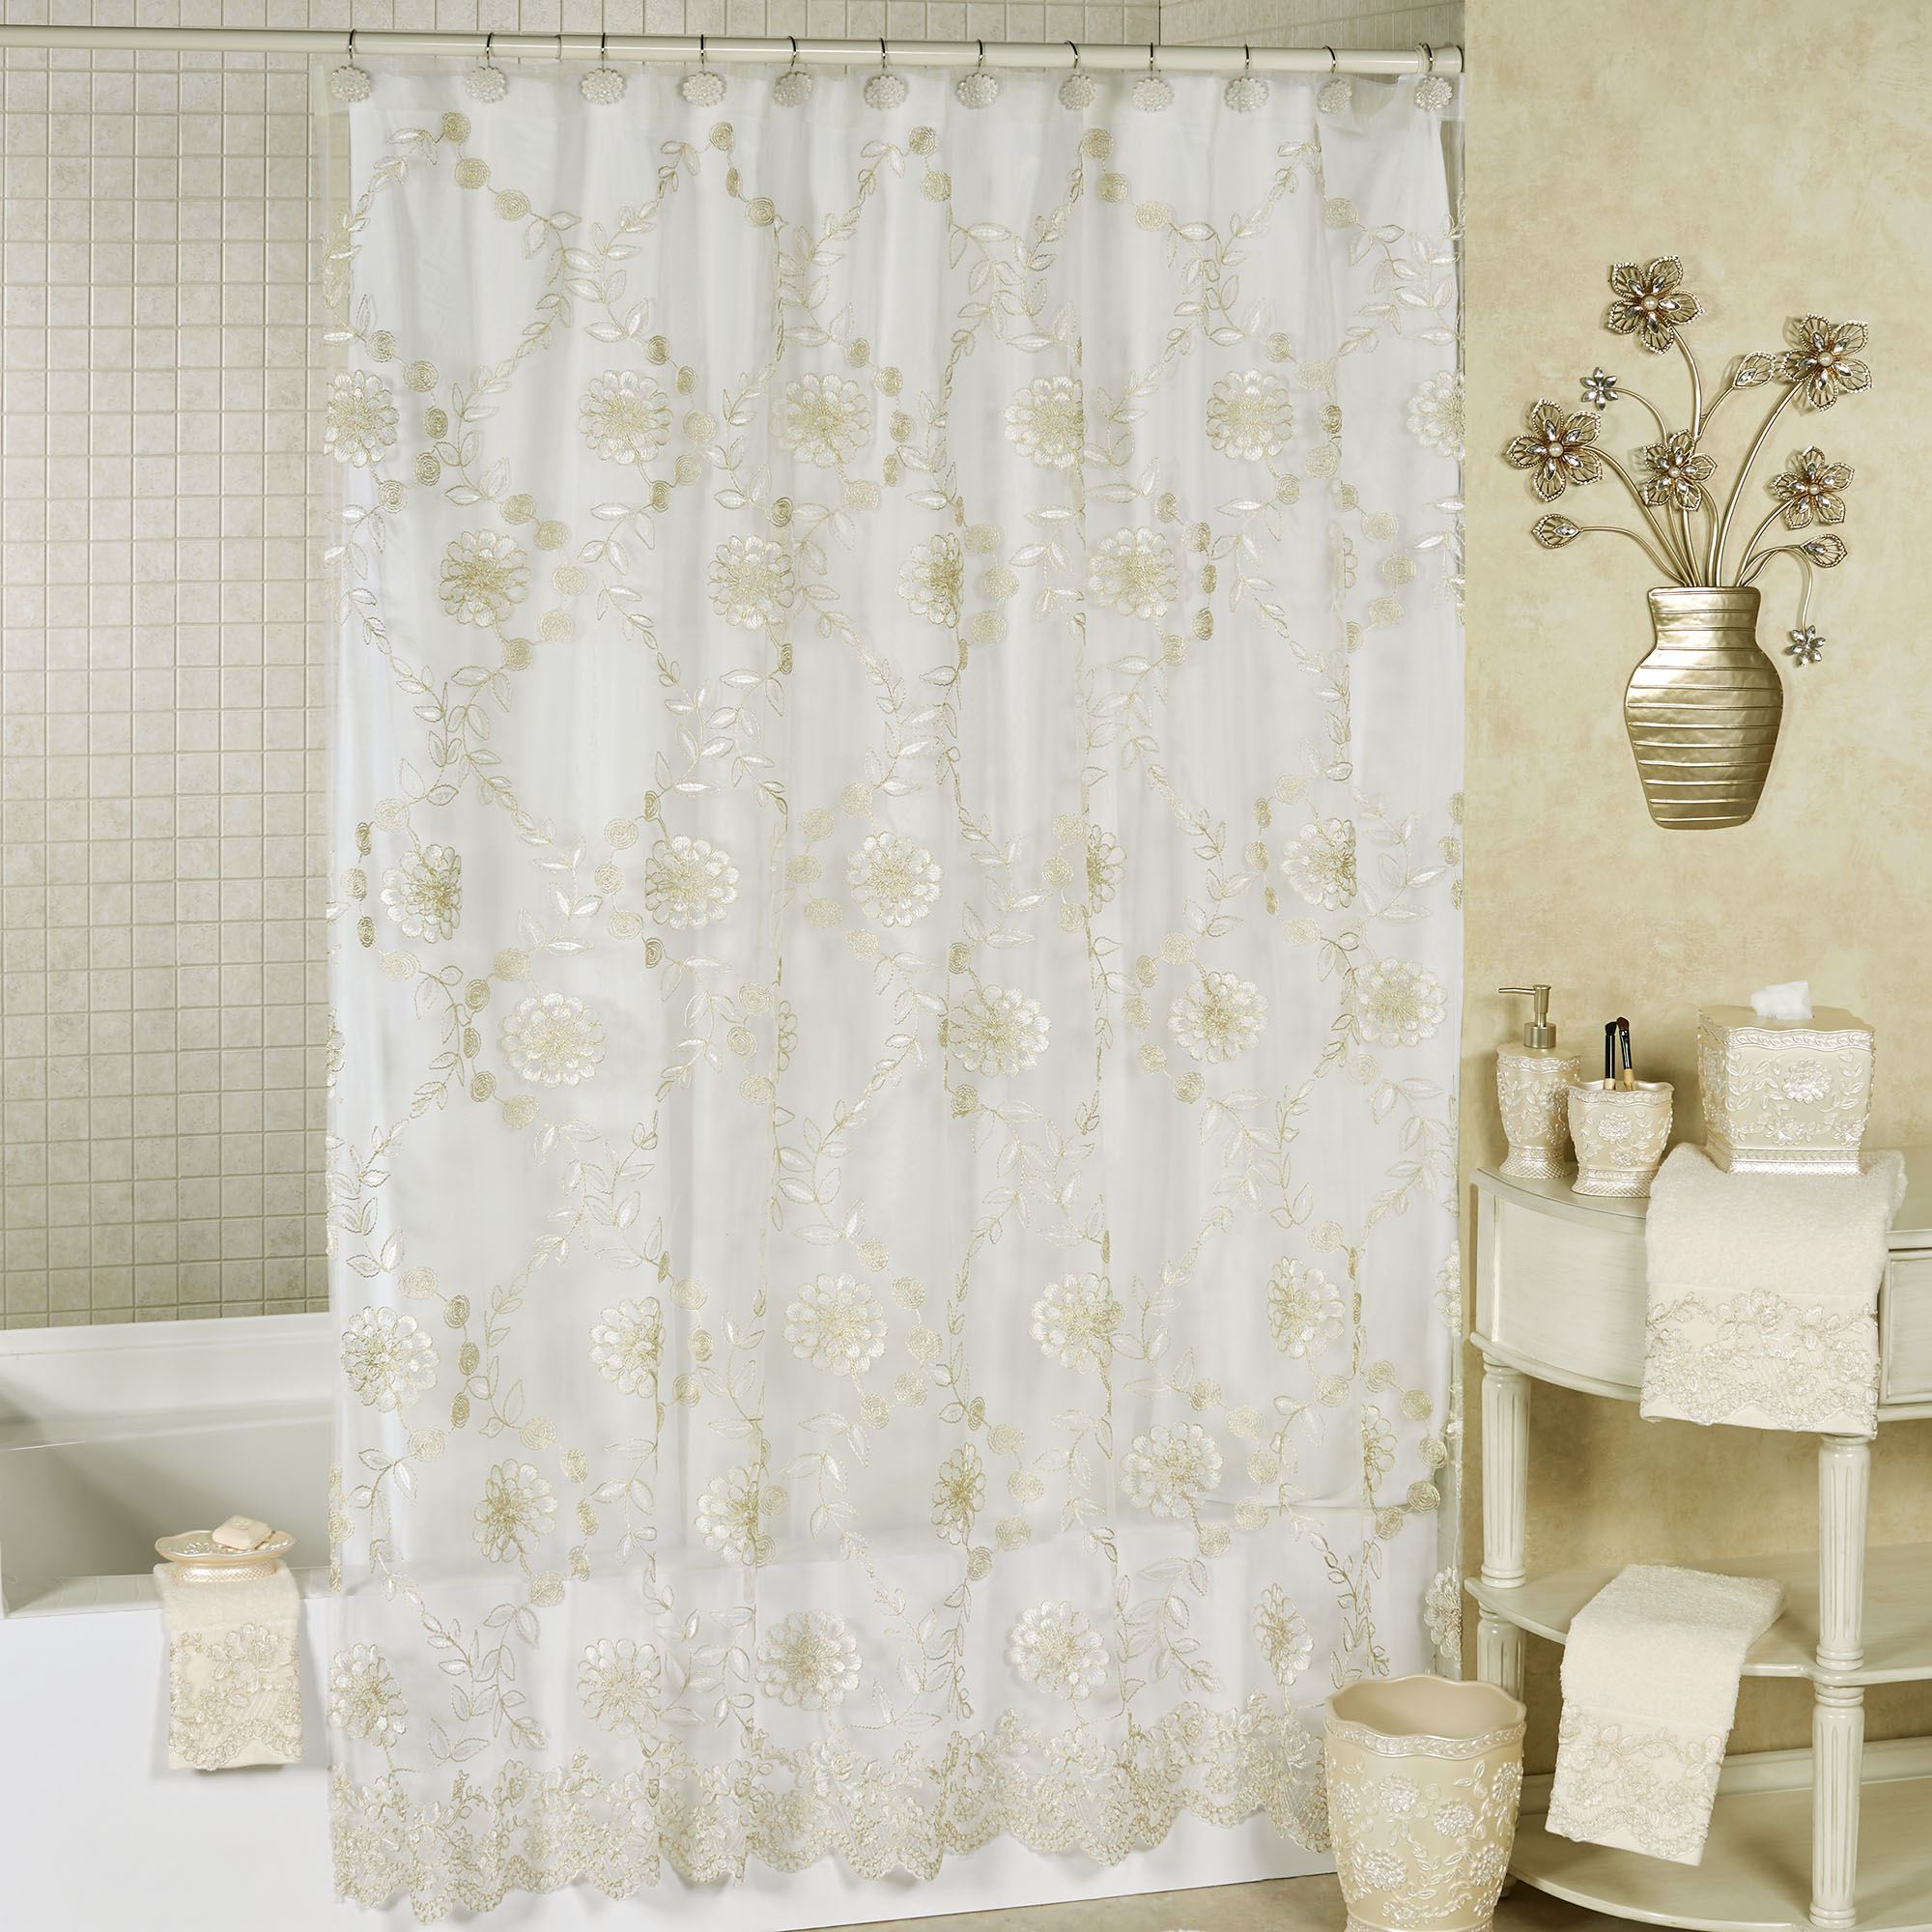 victoria sheer embroidered floral shower curtain